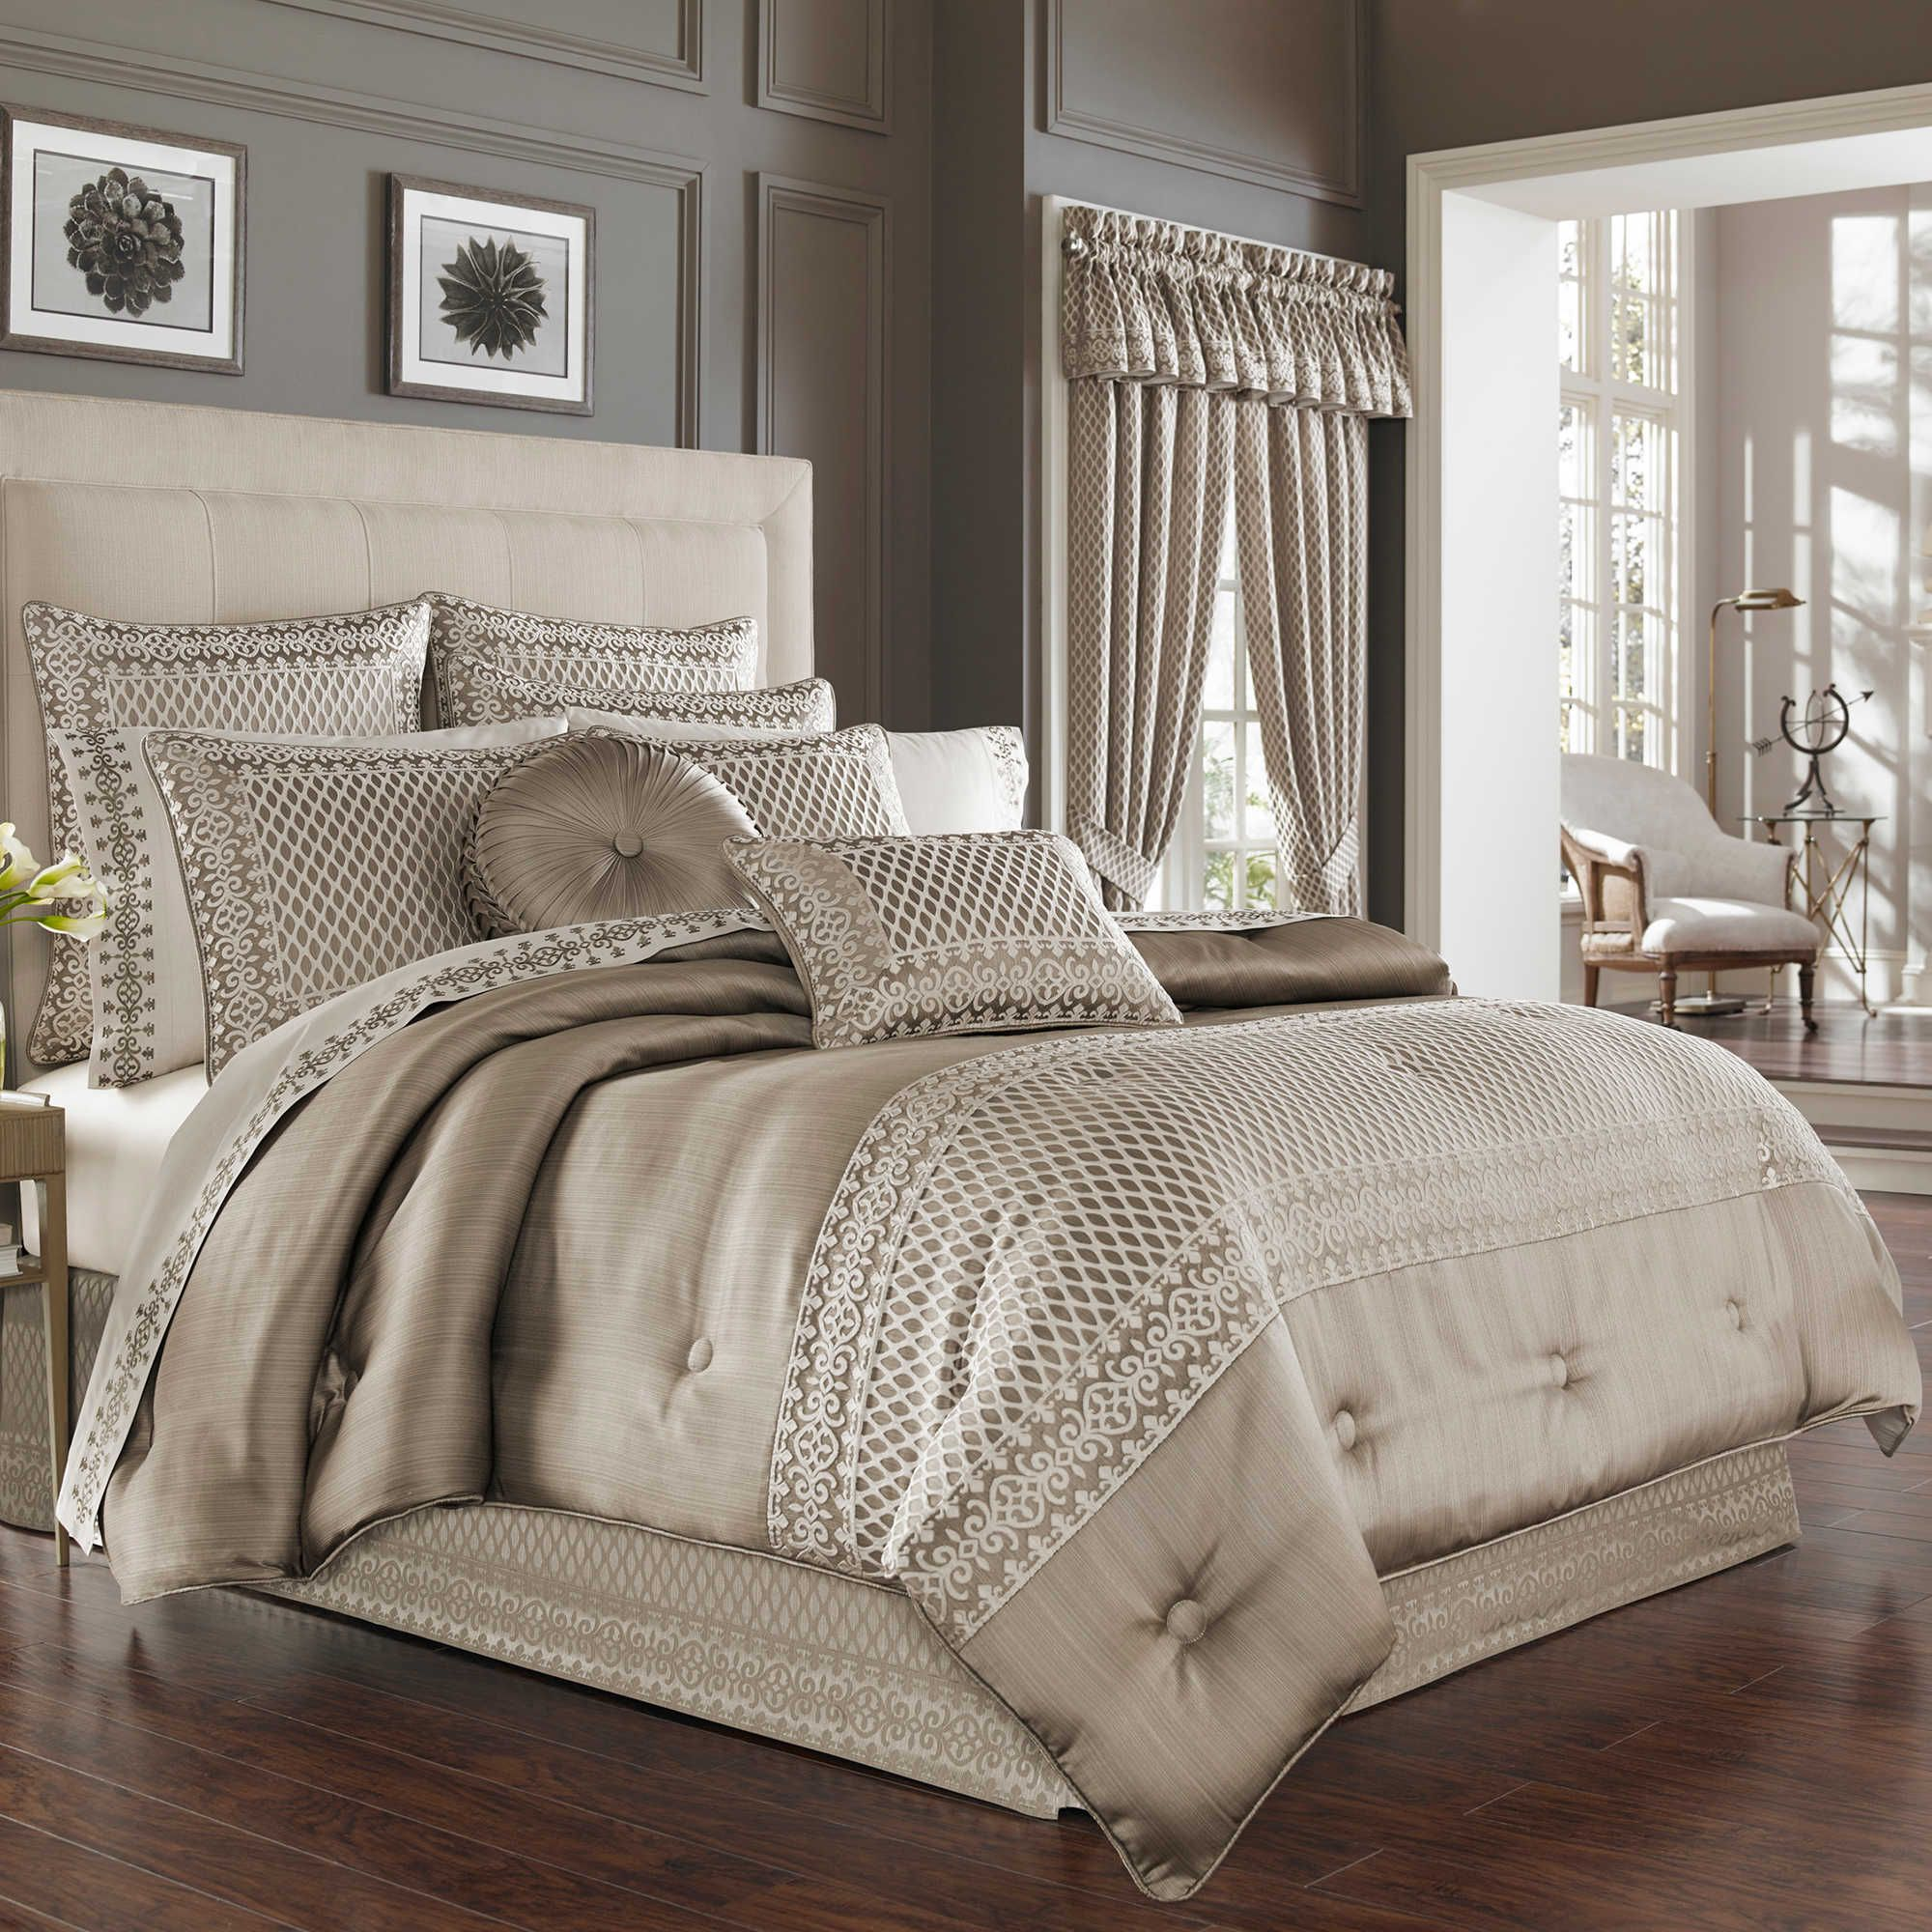 J. Queen New York Bohemia Comforter Set in Champagne